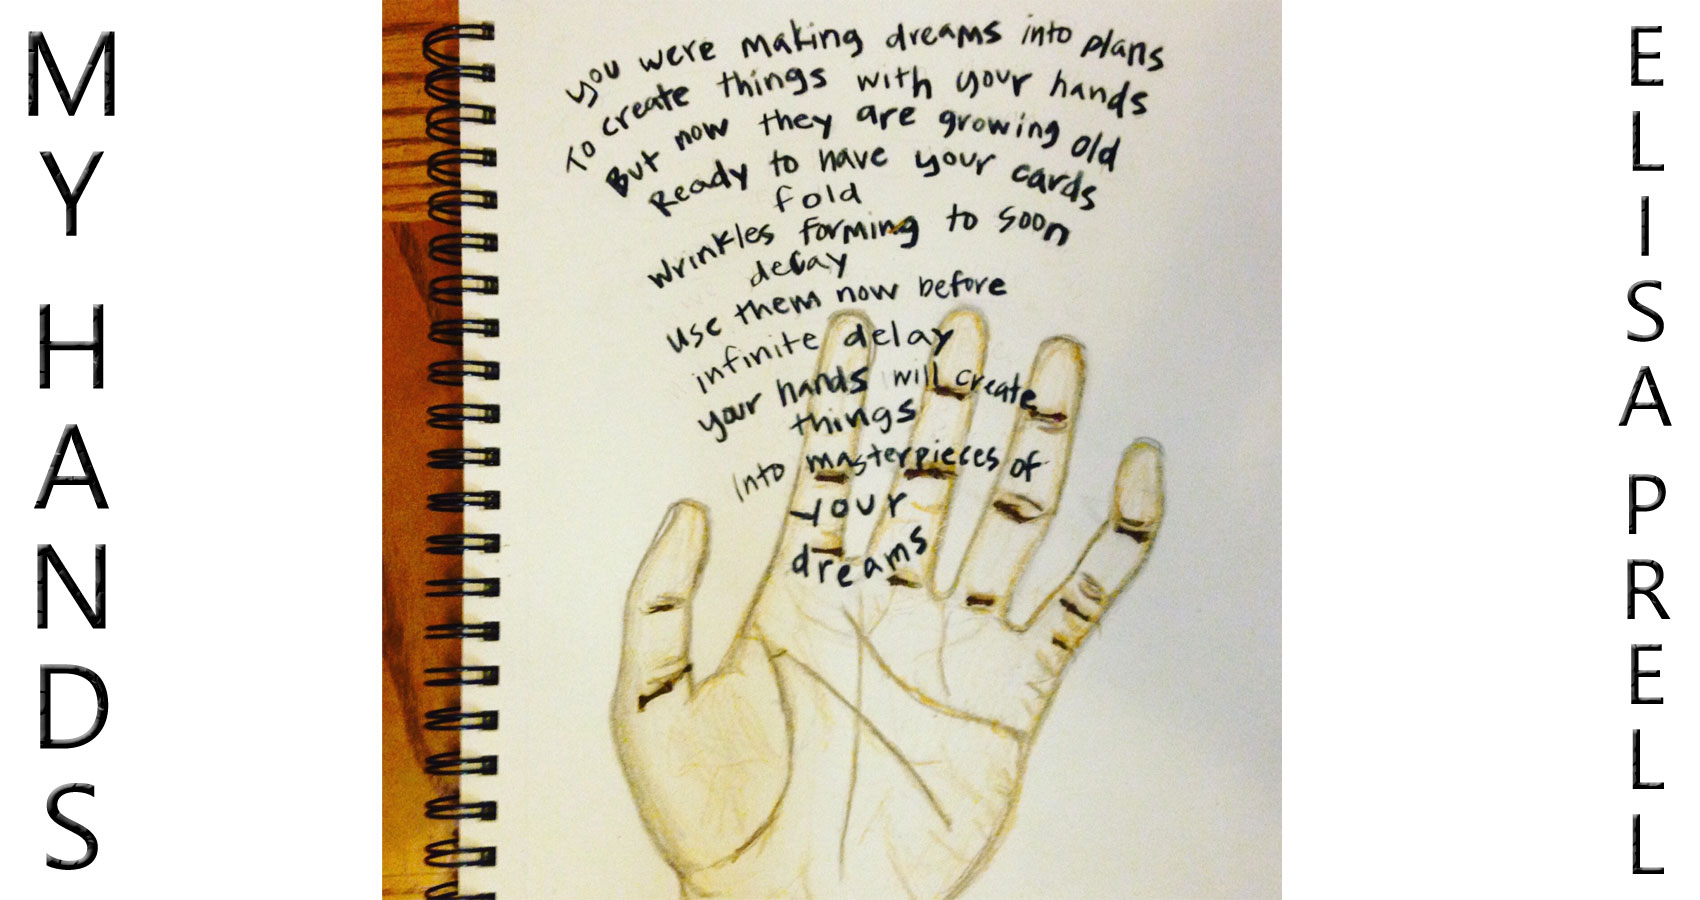 My Hands by Elisa at Spillwords.com